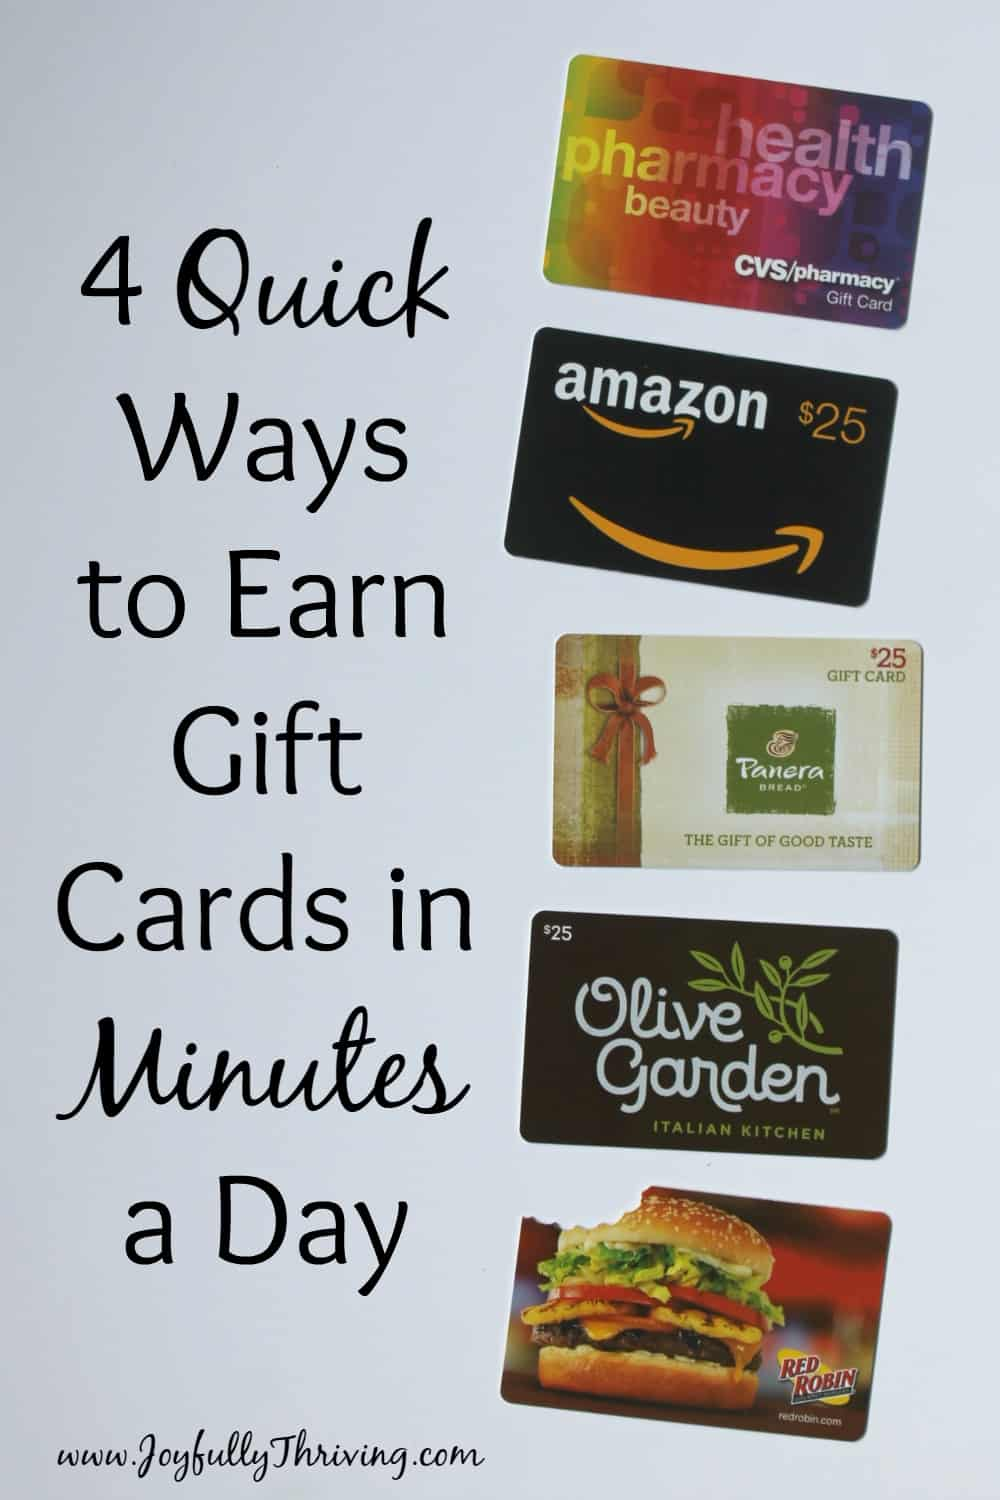 I love getting free gift cards! Great list of ideas that really work, and really do earn gift cards. Number 4 is my new favorite.